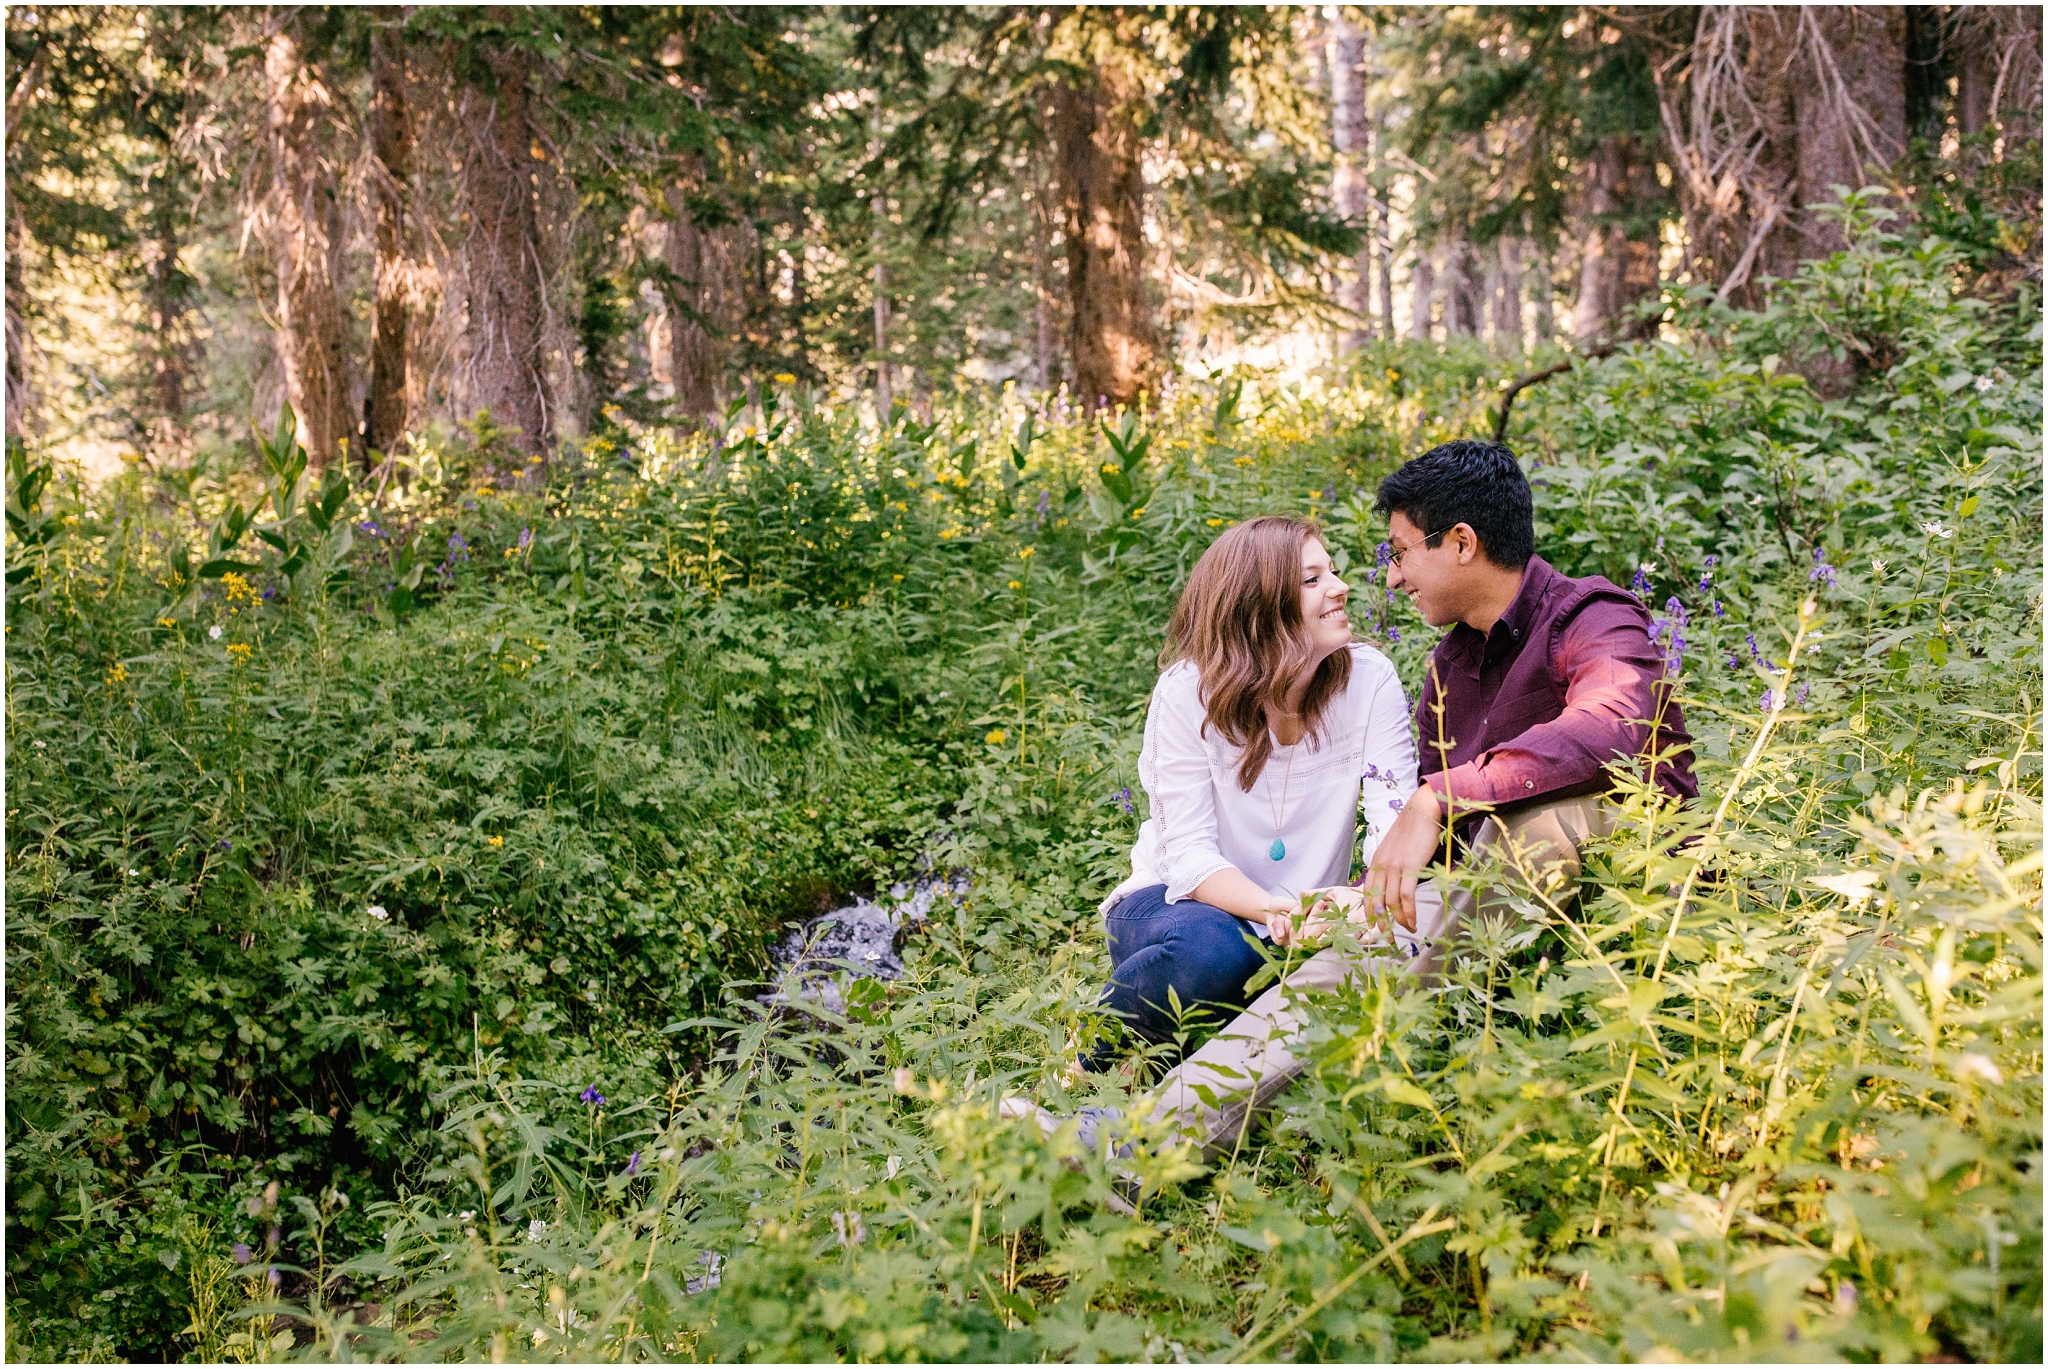 Harold and Emma-33_Lizzie-B-Imagery-Utah-Wedding-Photographer-Central-Utah-Park-City-Salt-Lake-City-Albion-Basin-Engagement-Session.jpg